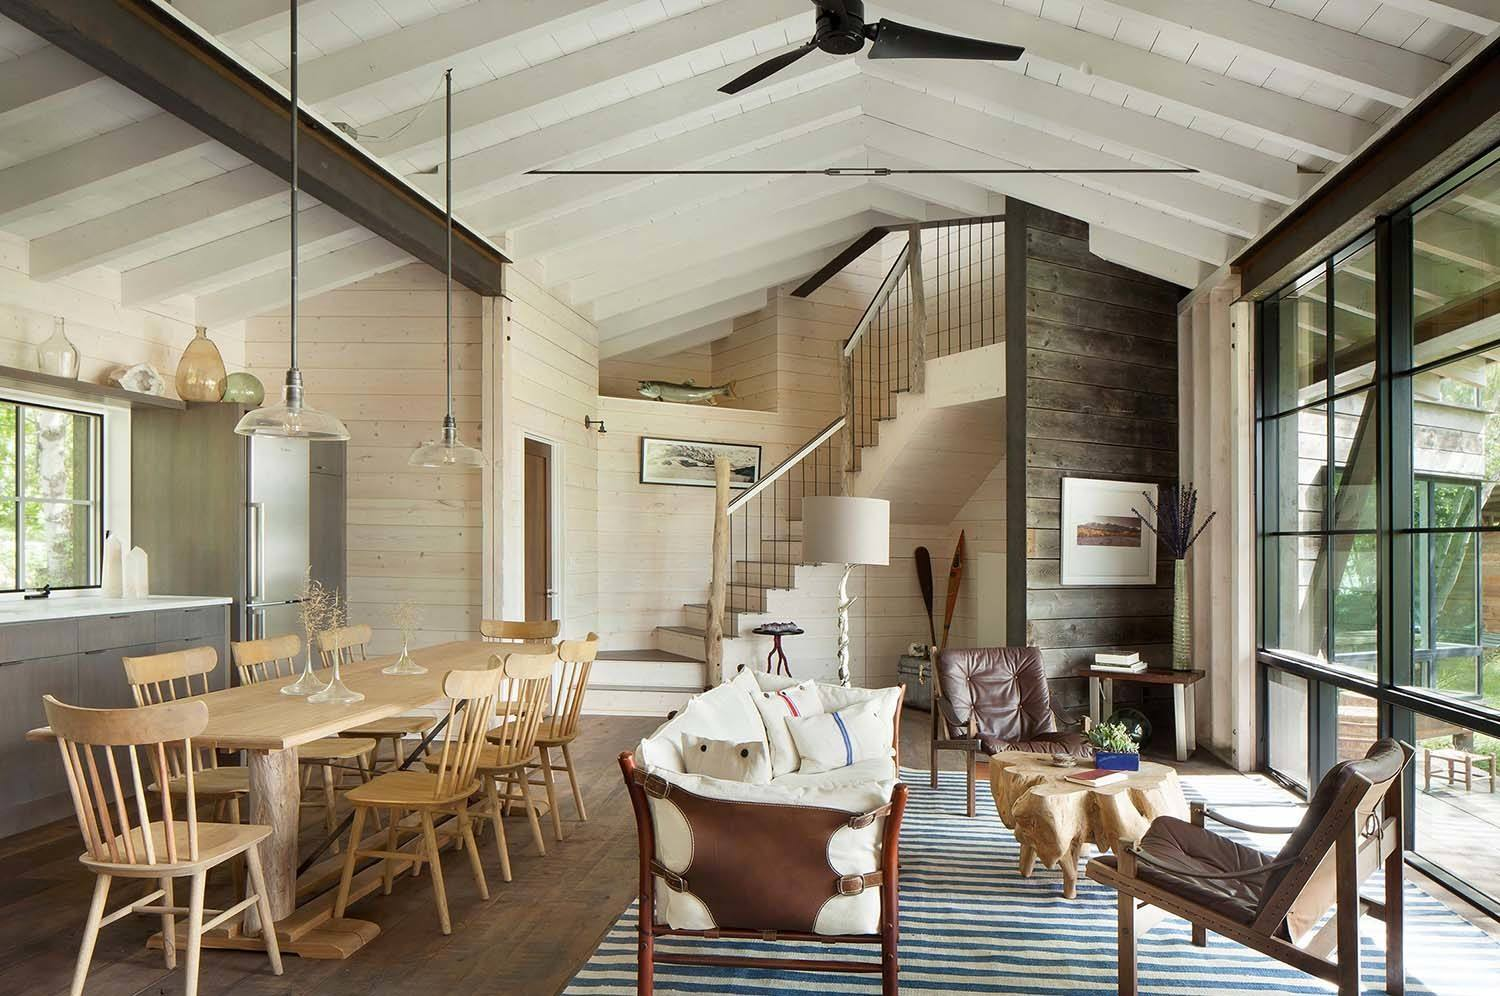 https://texastinyhomes.com/wp-content/uploads/2016/05/Modern-Rustic-Cabin-Pearson-Design-Group-03-1-Kindesign.jpg